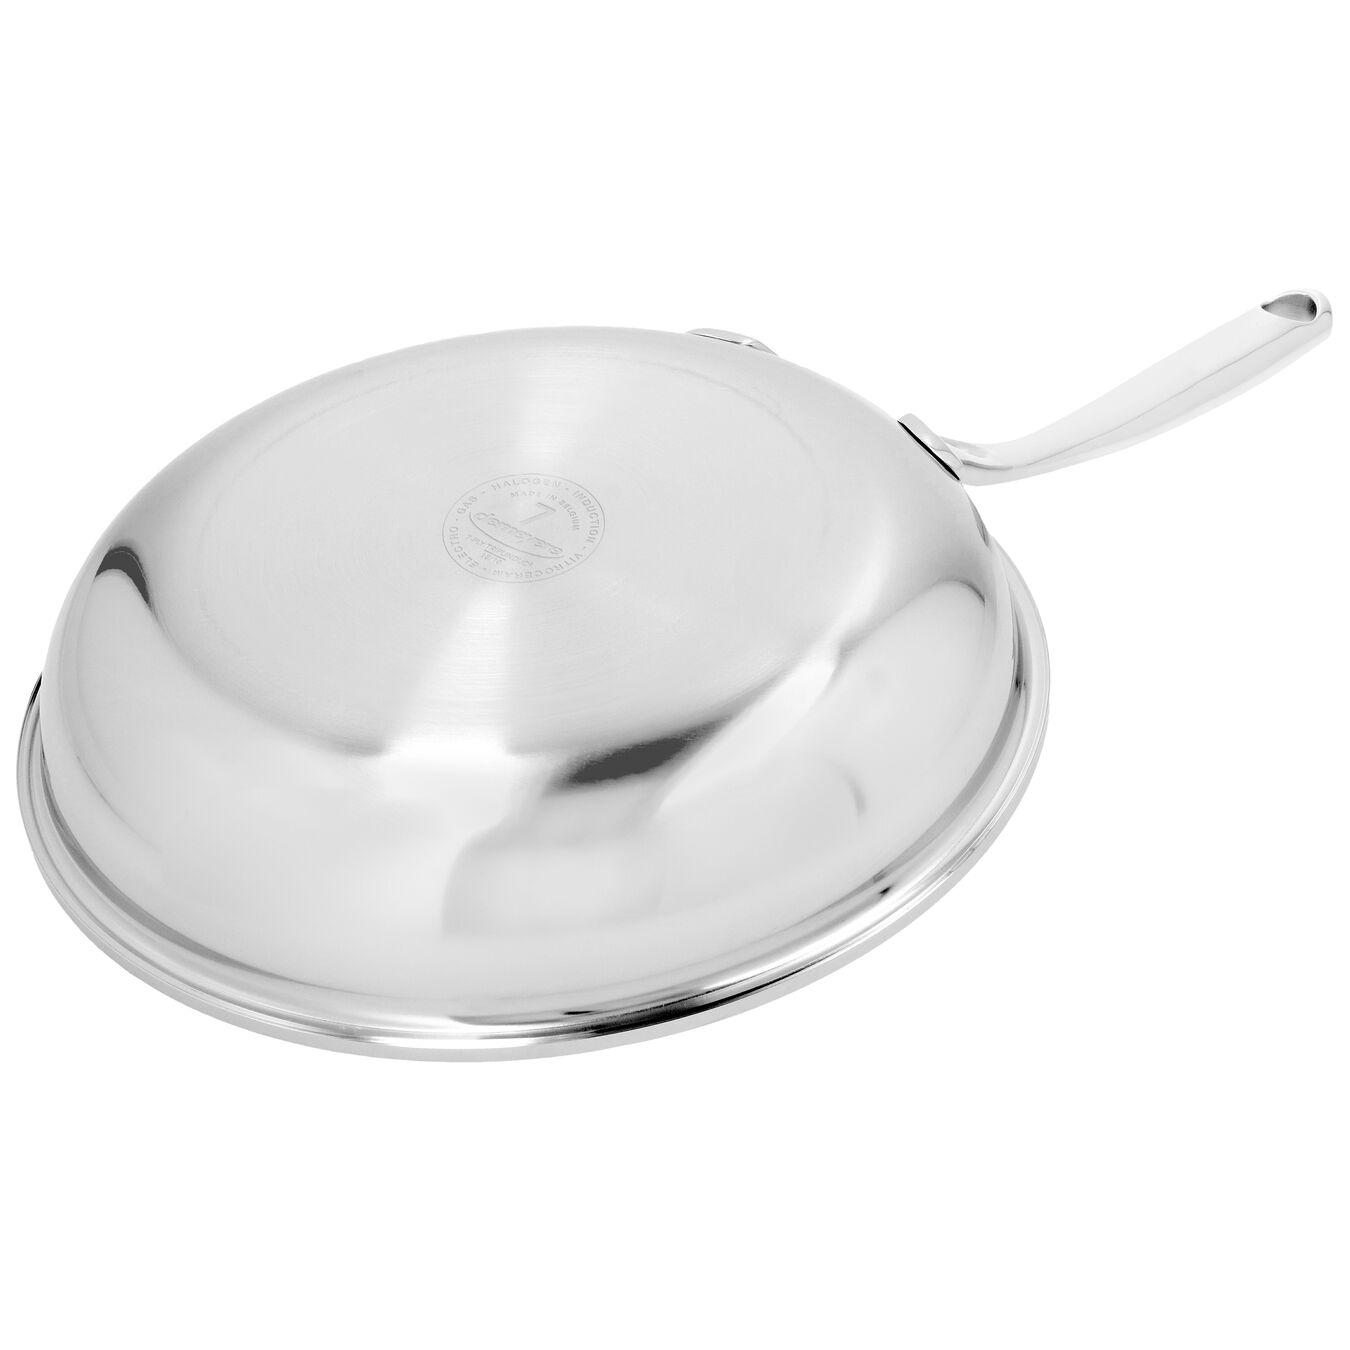 9-inch, 18/10 Stainless Steel, Proline Fry Pan,,large 7